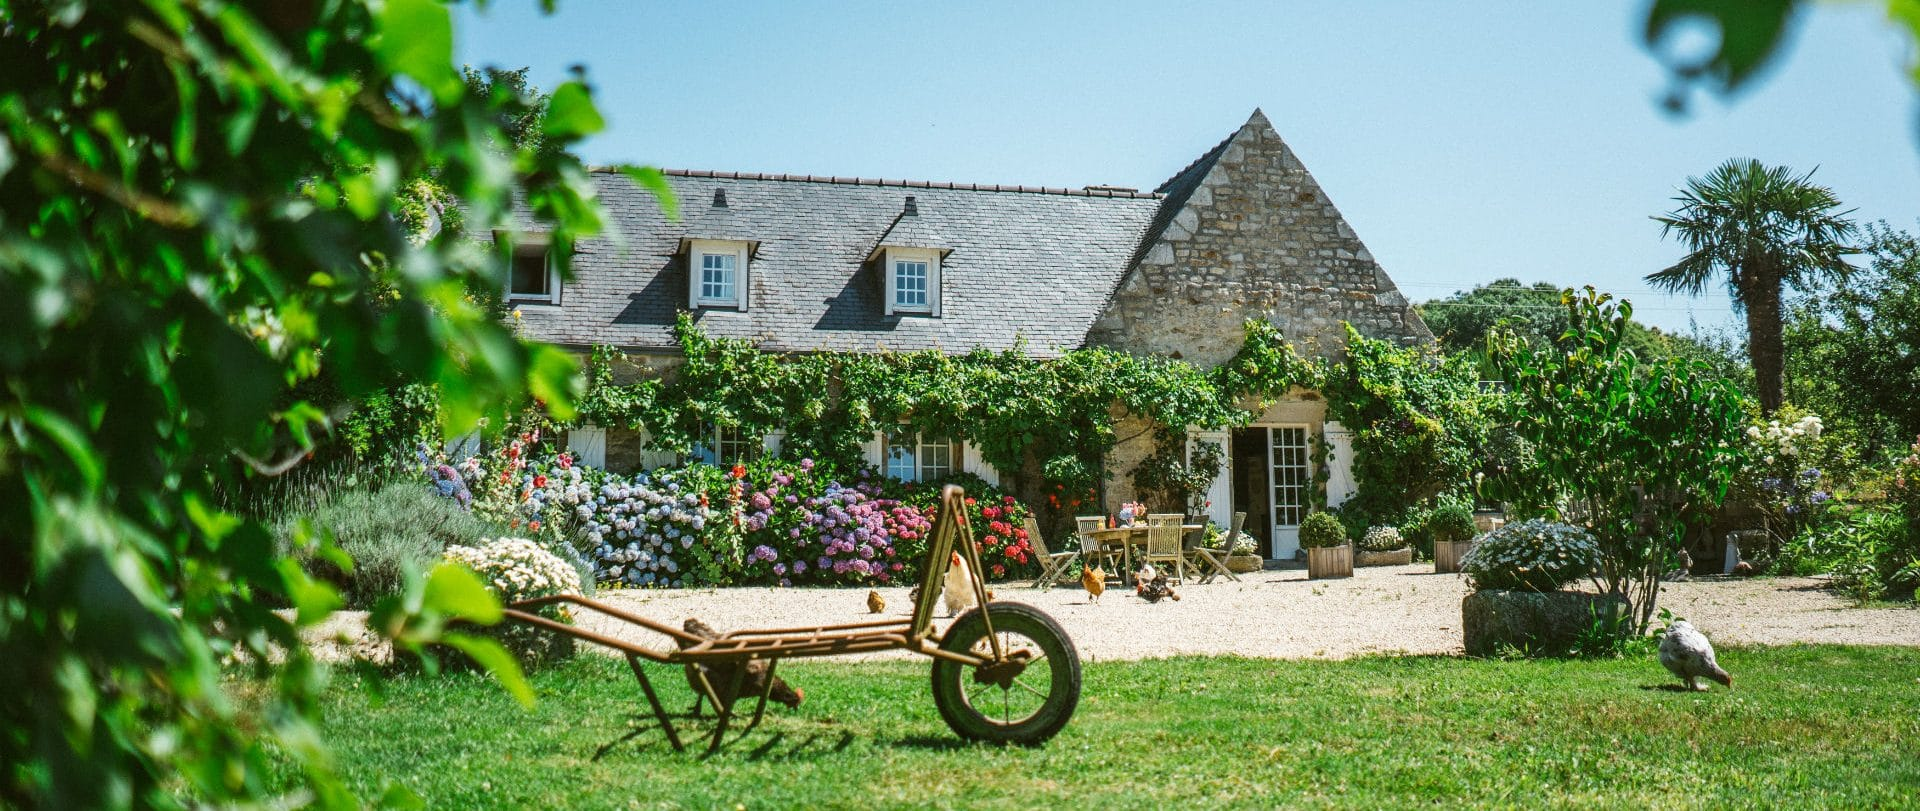 Chambre D Hote 29 Prices Bed And Breakfast Bretagne South Finistère The Farm From